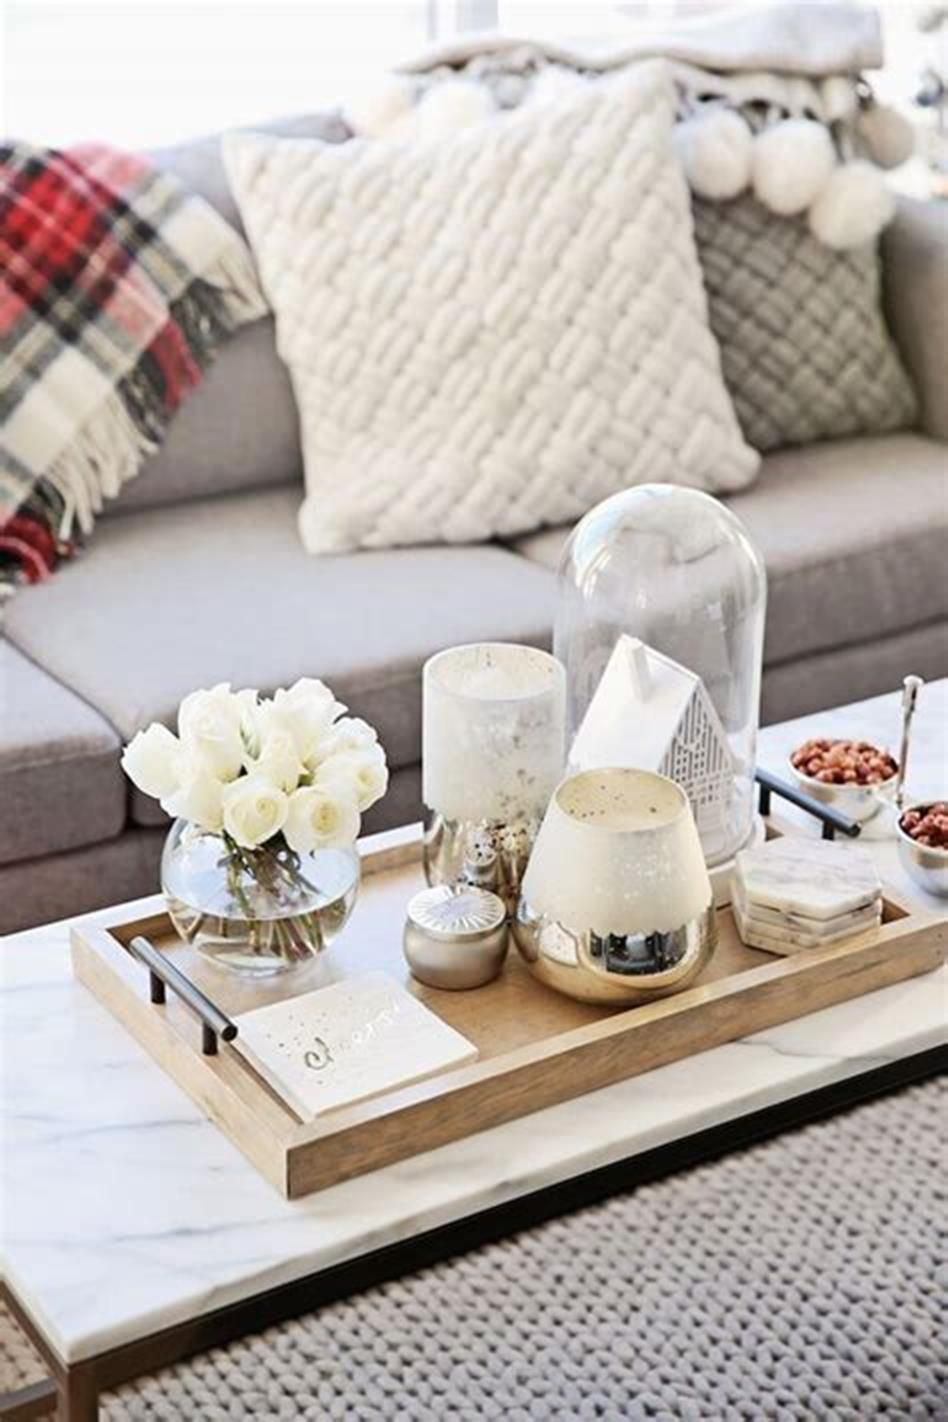 Unique Coffee Table Decor 46 Awesome Coffee Table Tray Decor Ideas Decorating Ideas